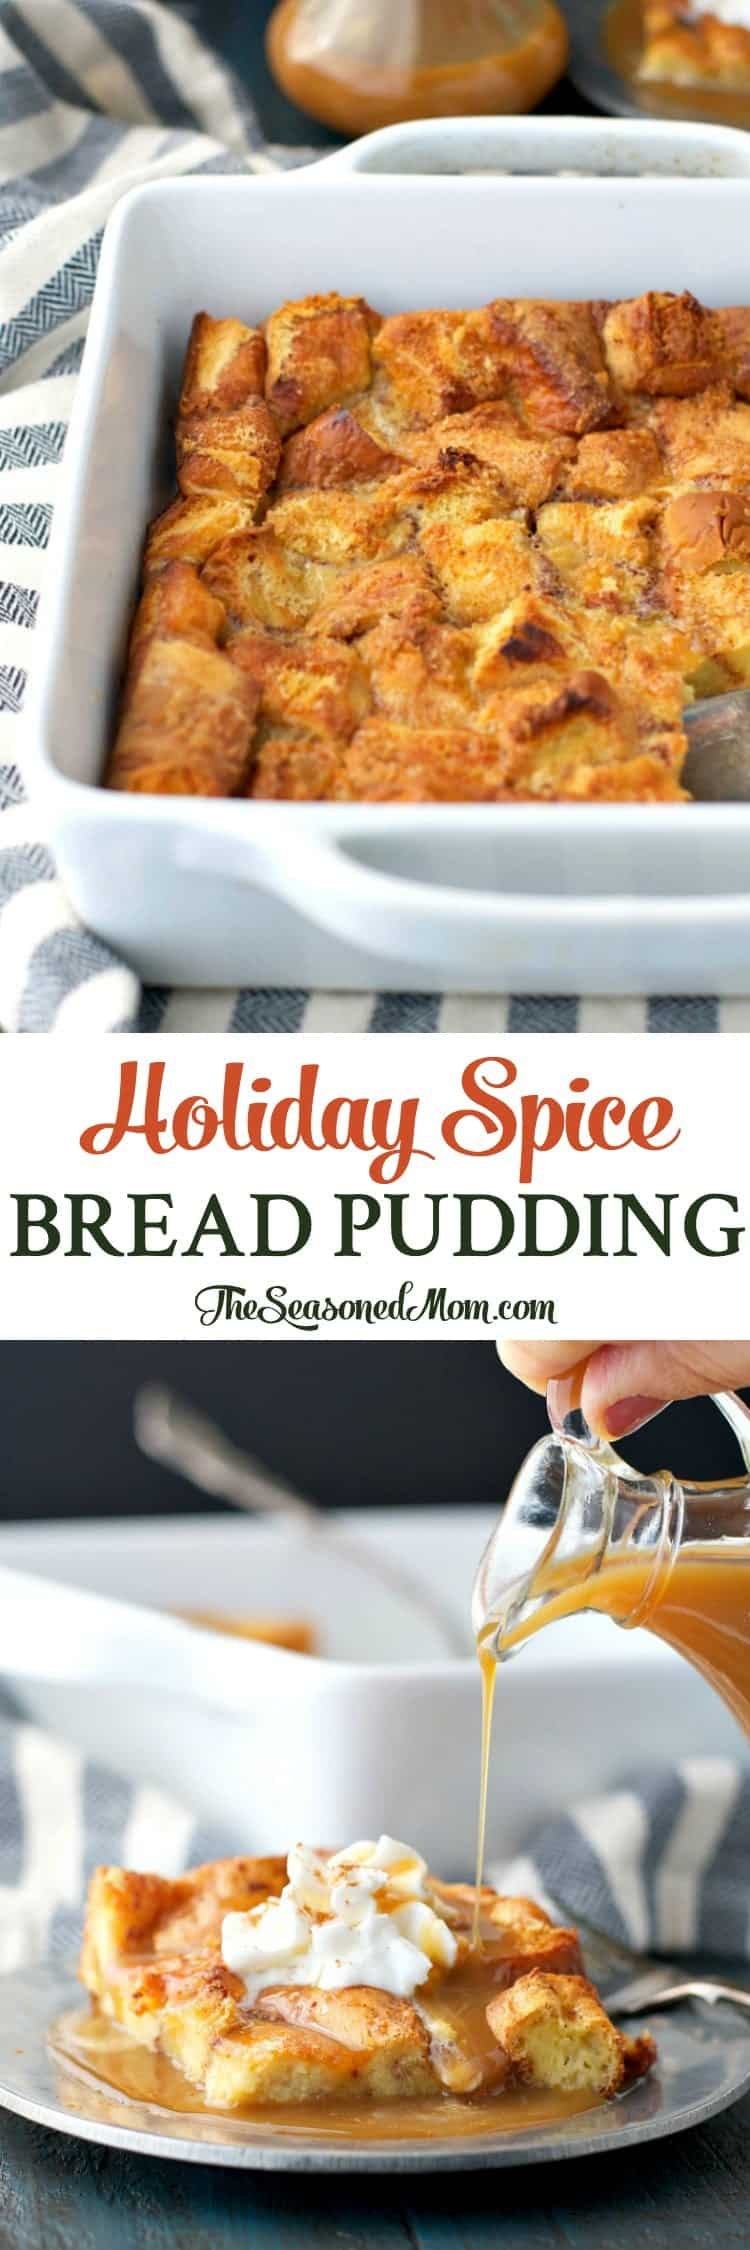 Holiday Spice Bread Pudding is an easy dessert that's ready with only 10 minutes of prep, and it will fill your house with the cozy aroma of the season!